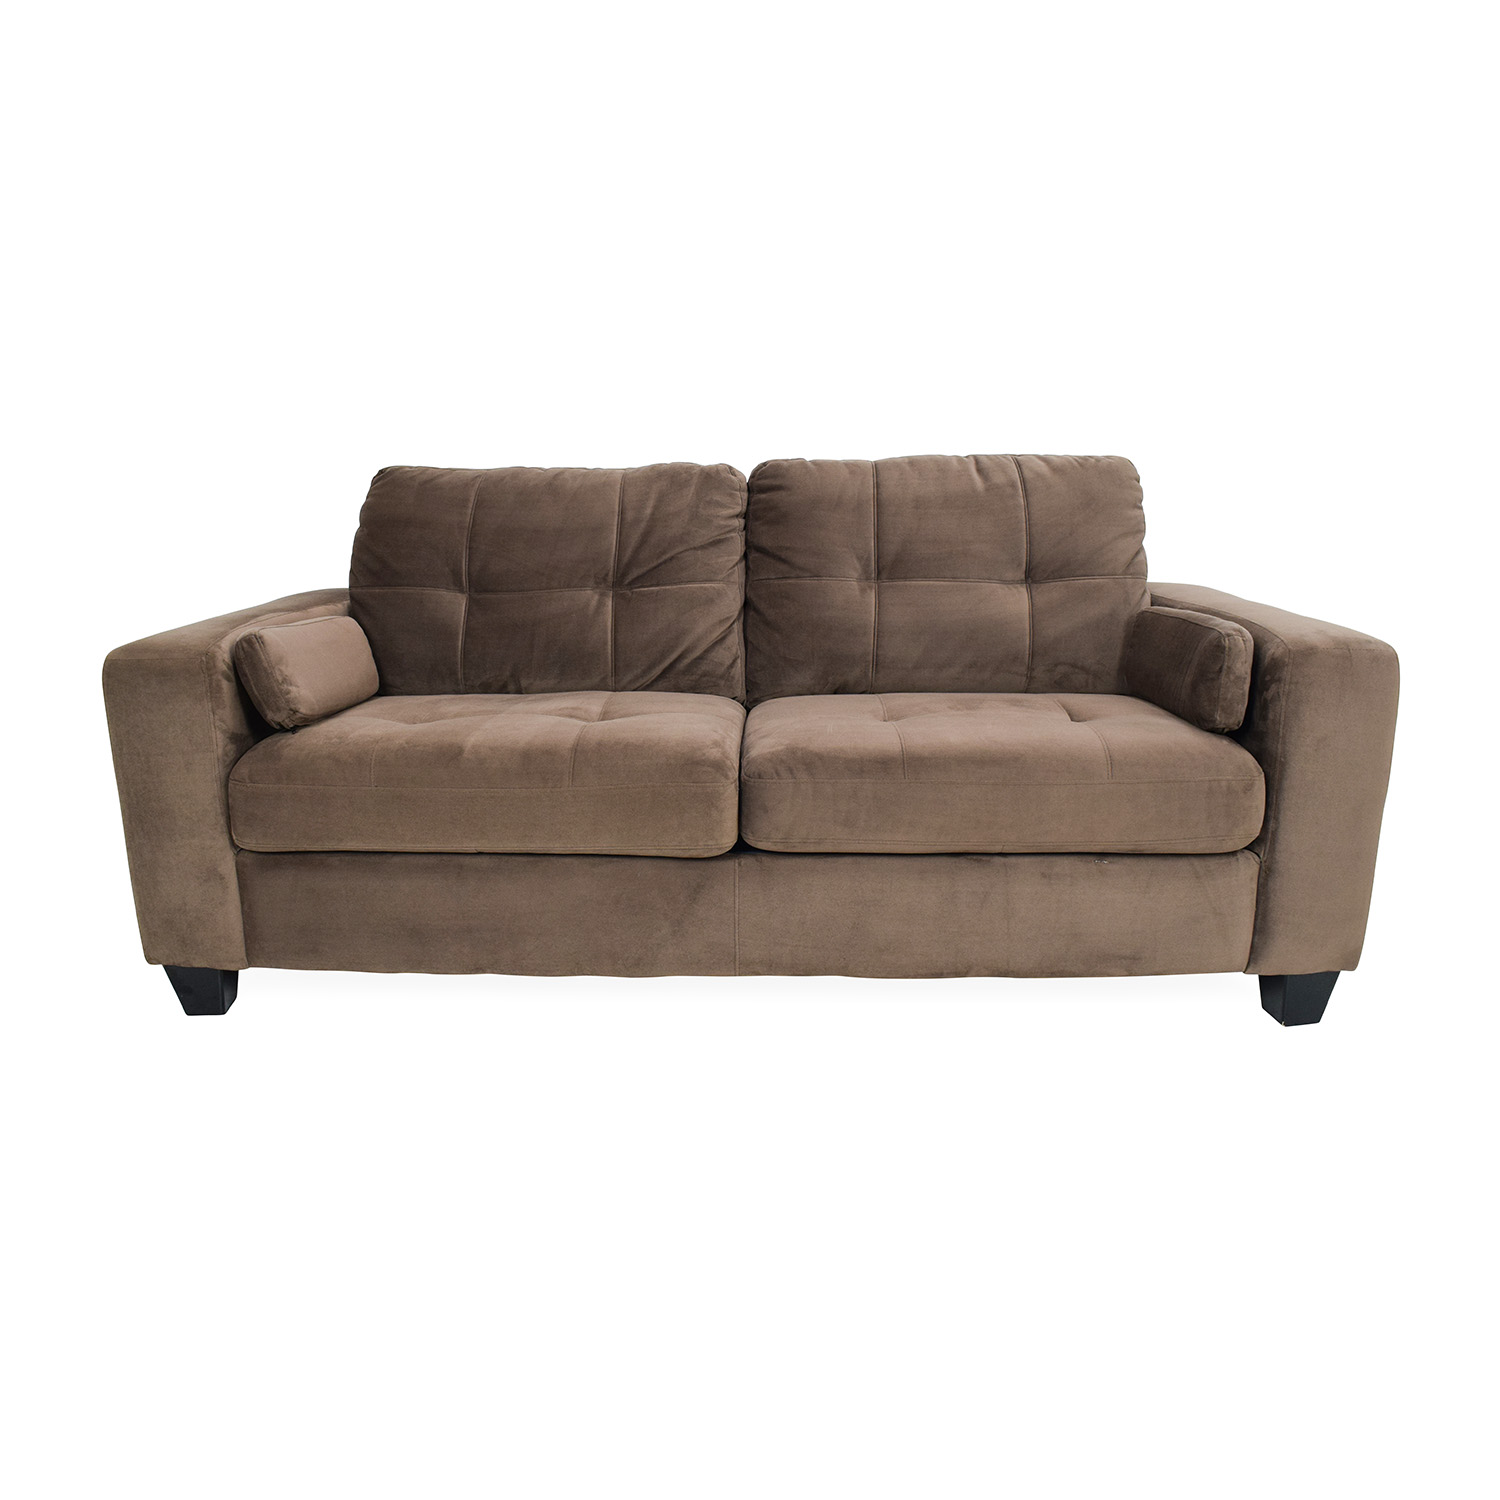 Jennifer Convertibles Sofa Beds Softee Full Sleeper Sofa